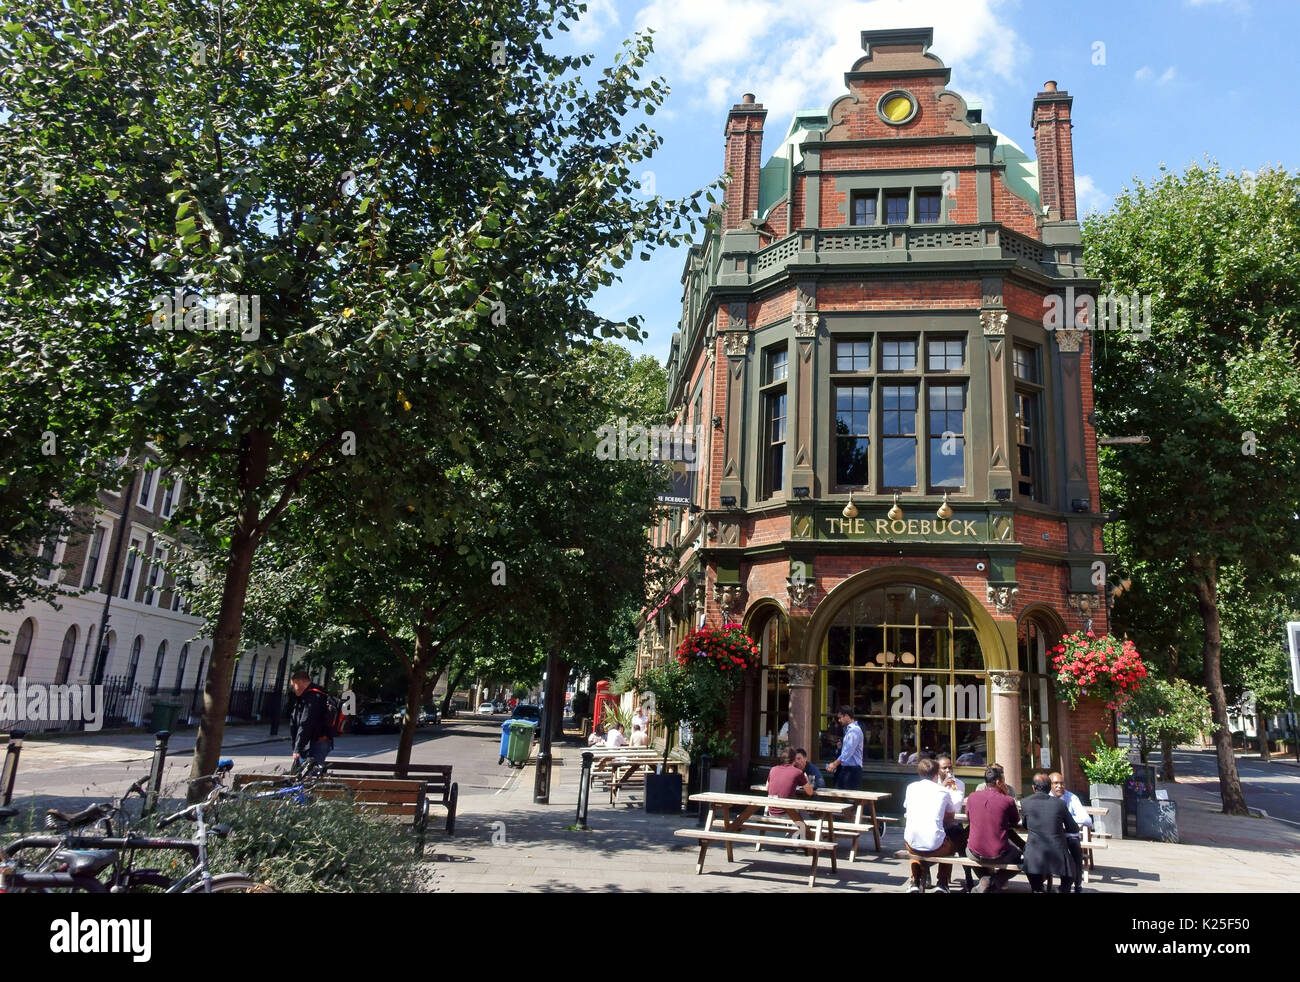 The Roebuck public house in Great Dover Street, London SE1 - Stock Image